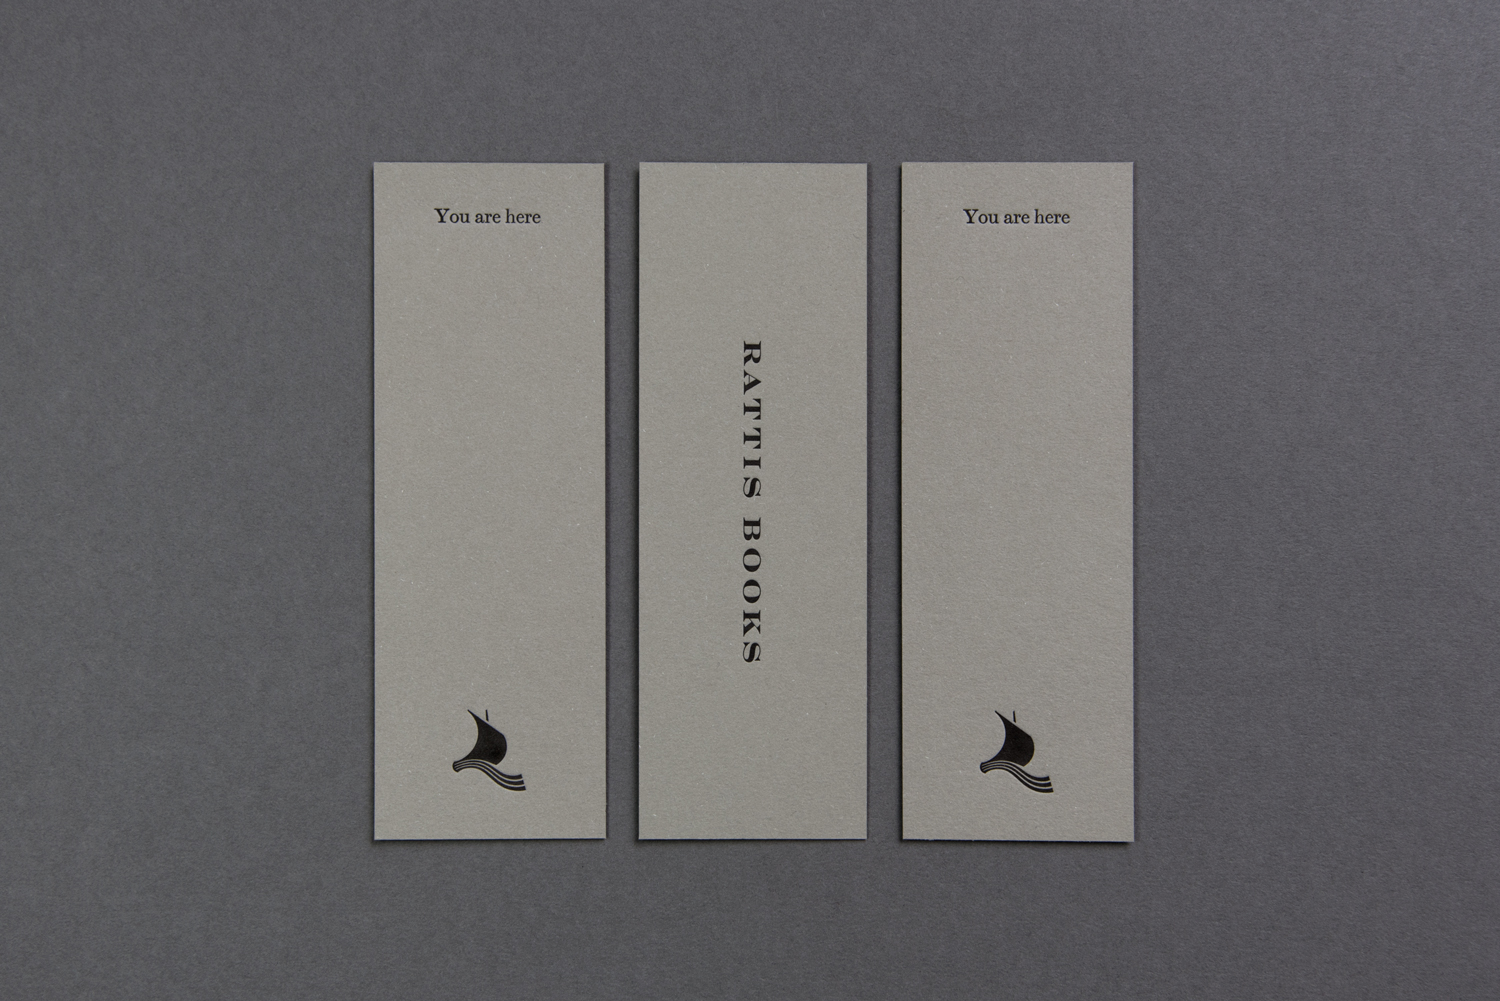 Logo, logotype and bookmarks by London-based design studio, private press and typography workshop The Counter Press for UK independent publisher Rattis Books.